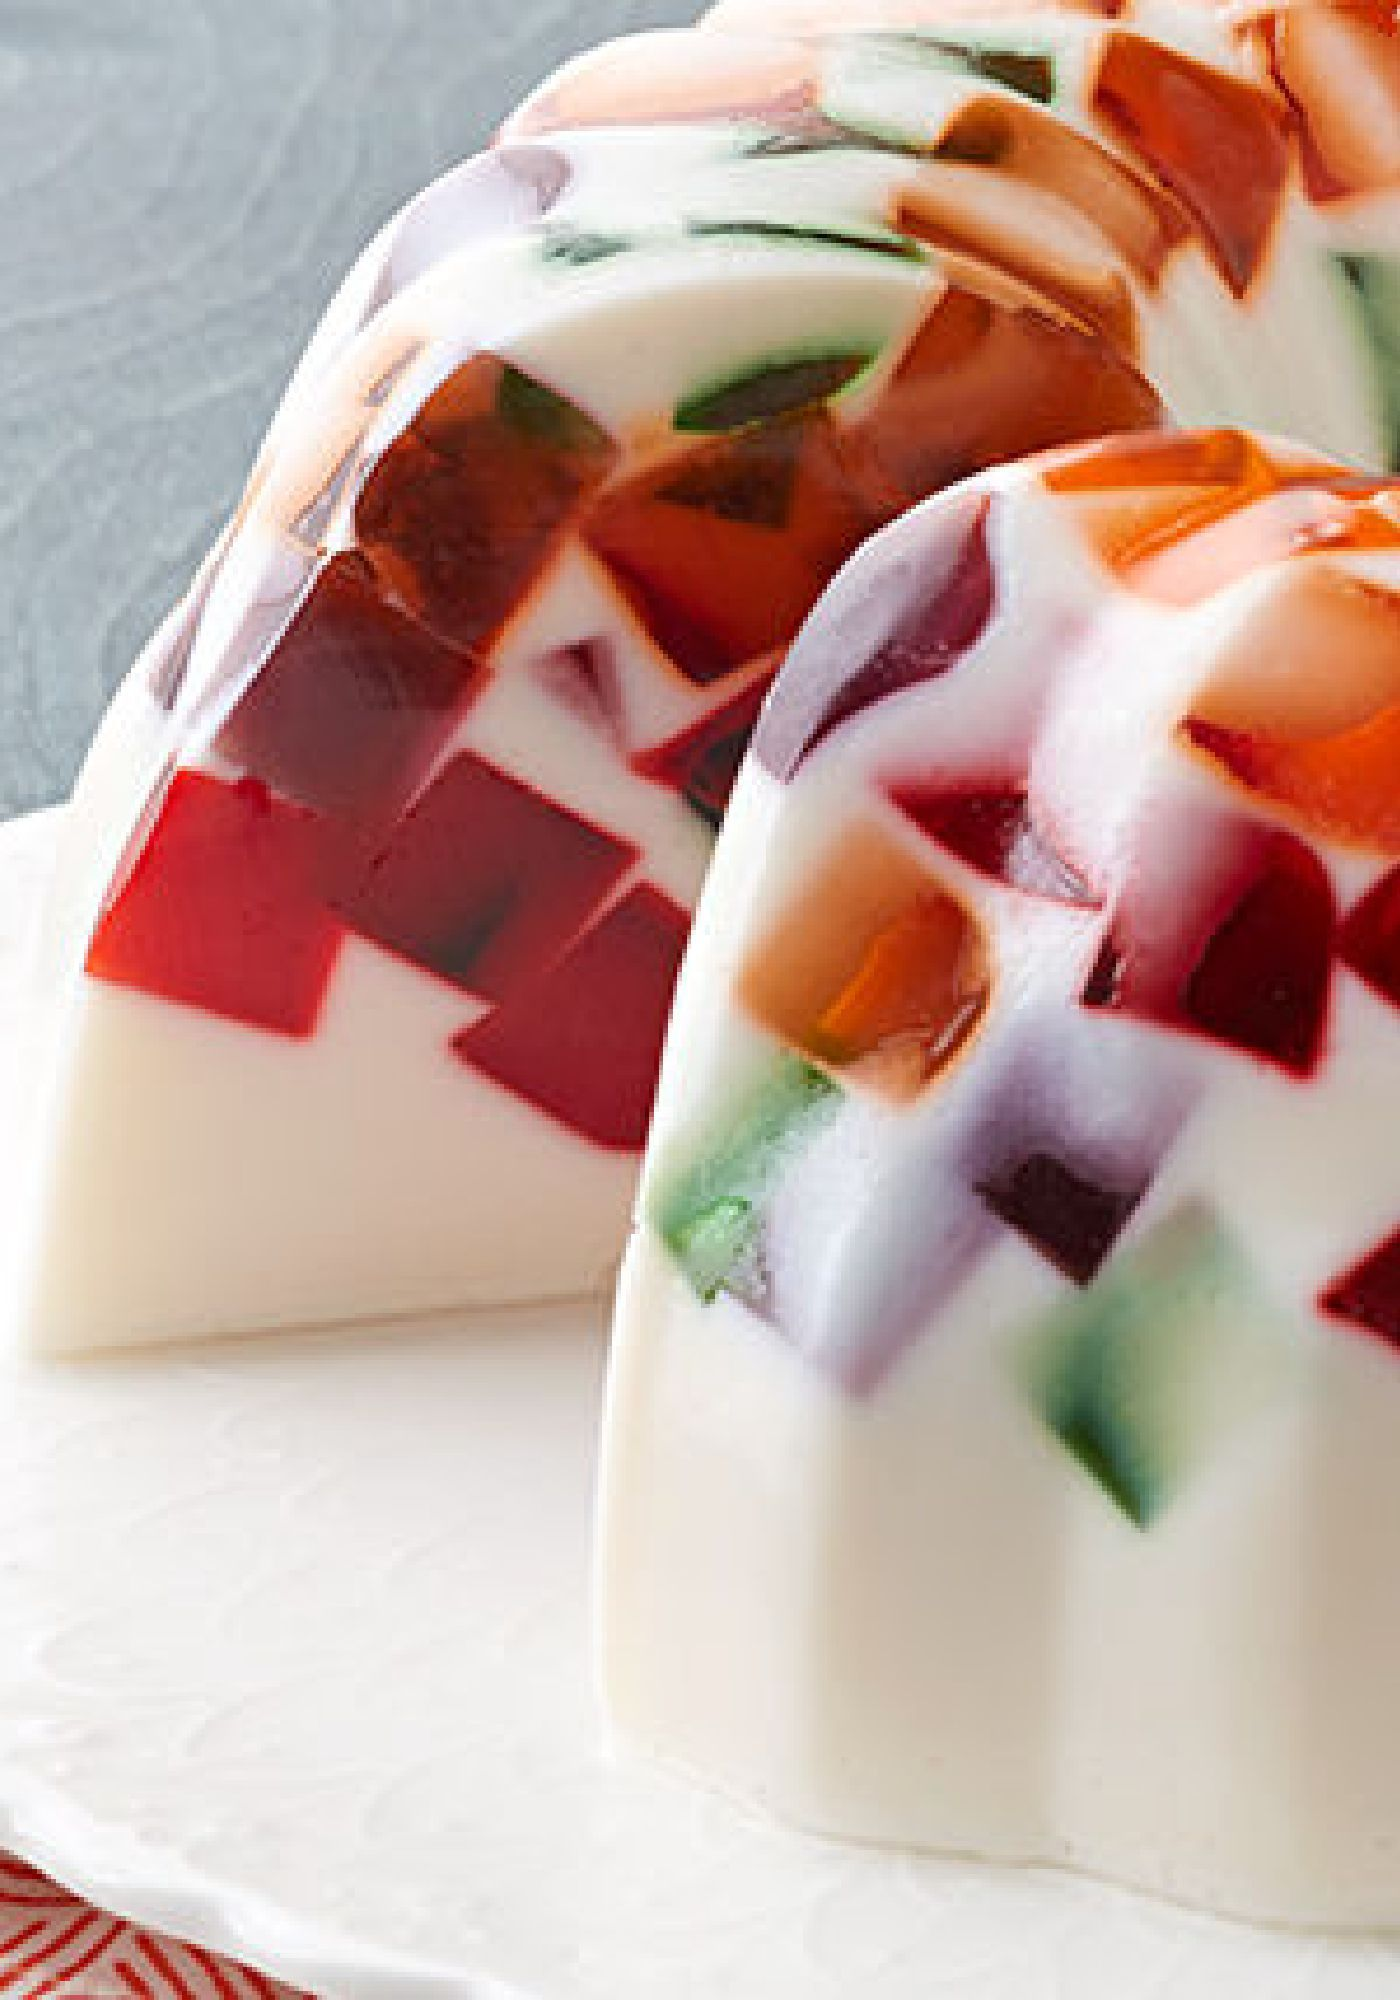 Creamy Jell O Mosaic Dessert Cubes Of Rainbow Hued Gelatin Give This Cool And Refreshing